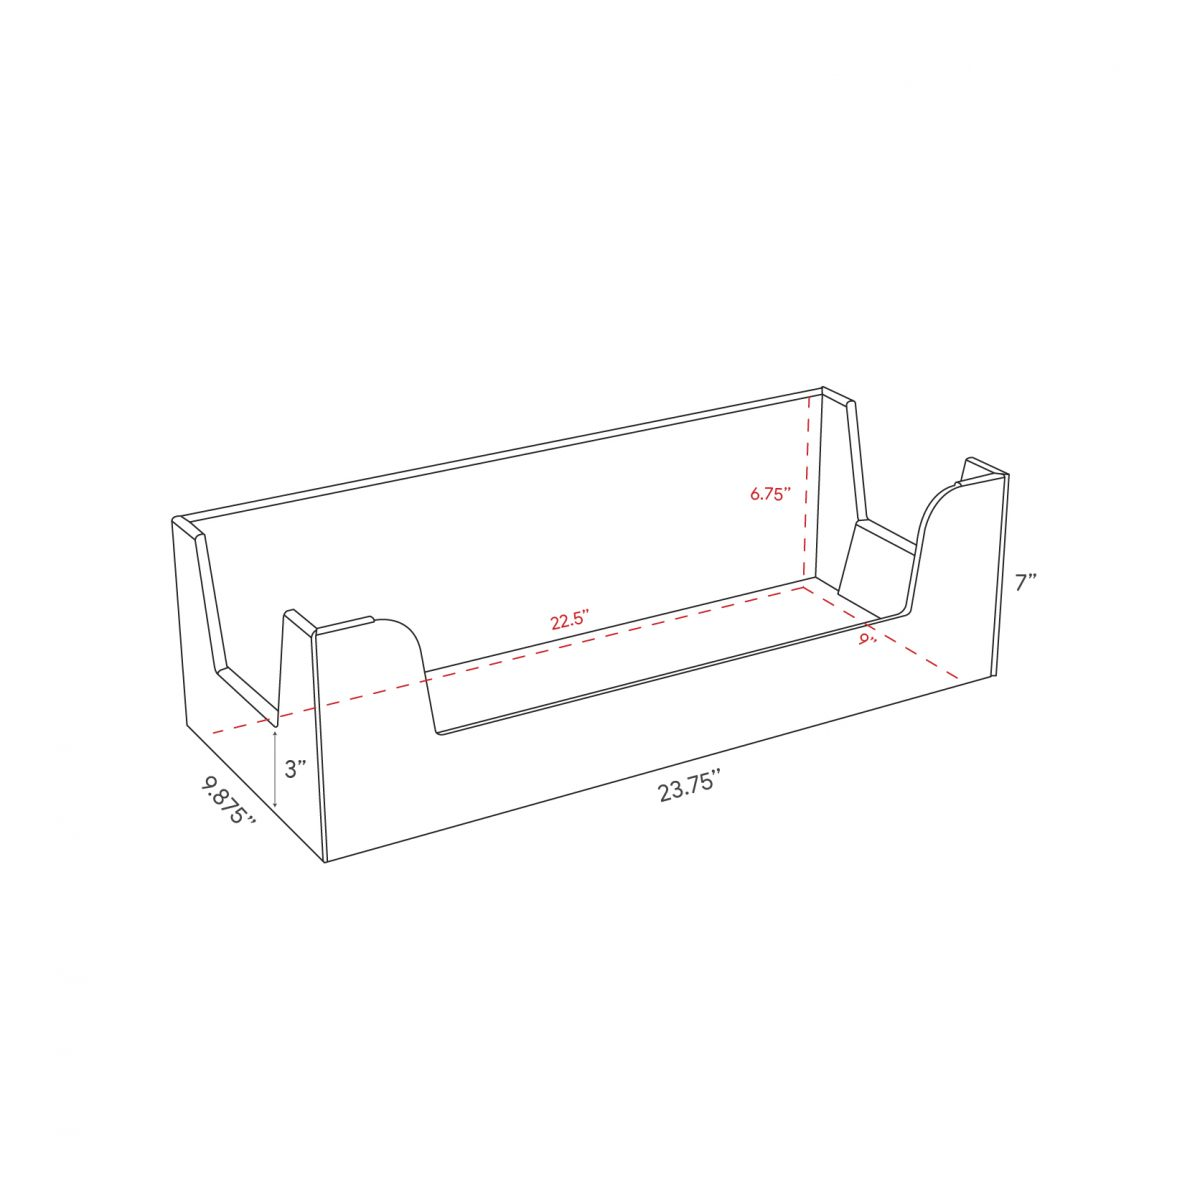 Cardboard counter display, rectangle box - dimensions